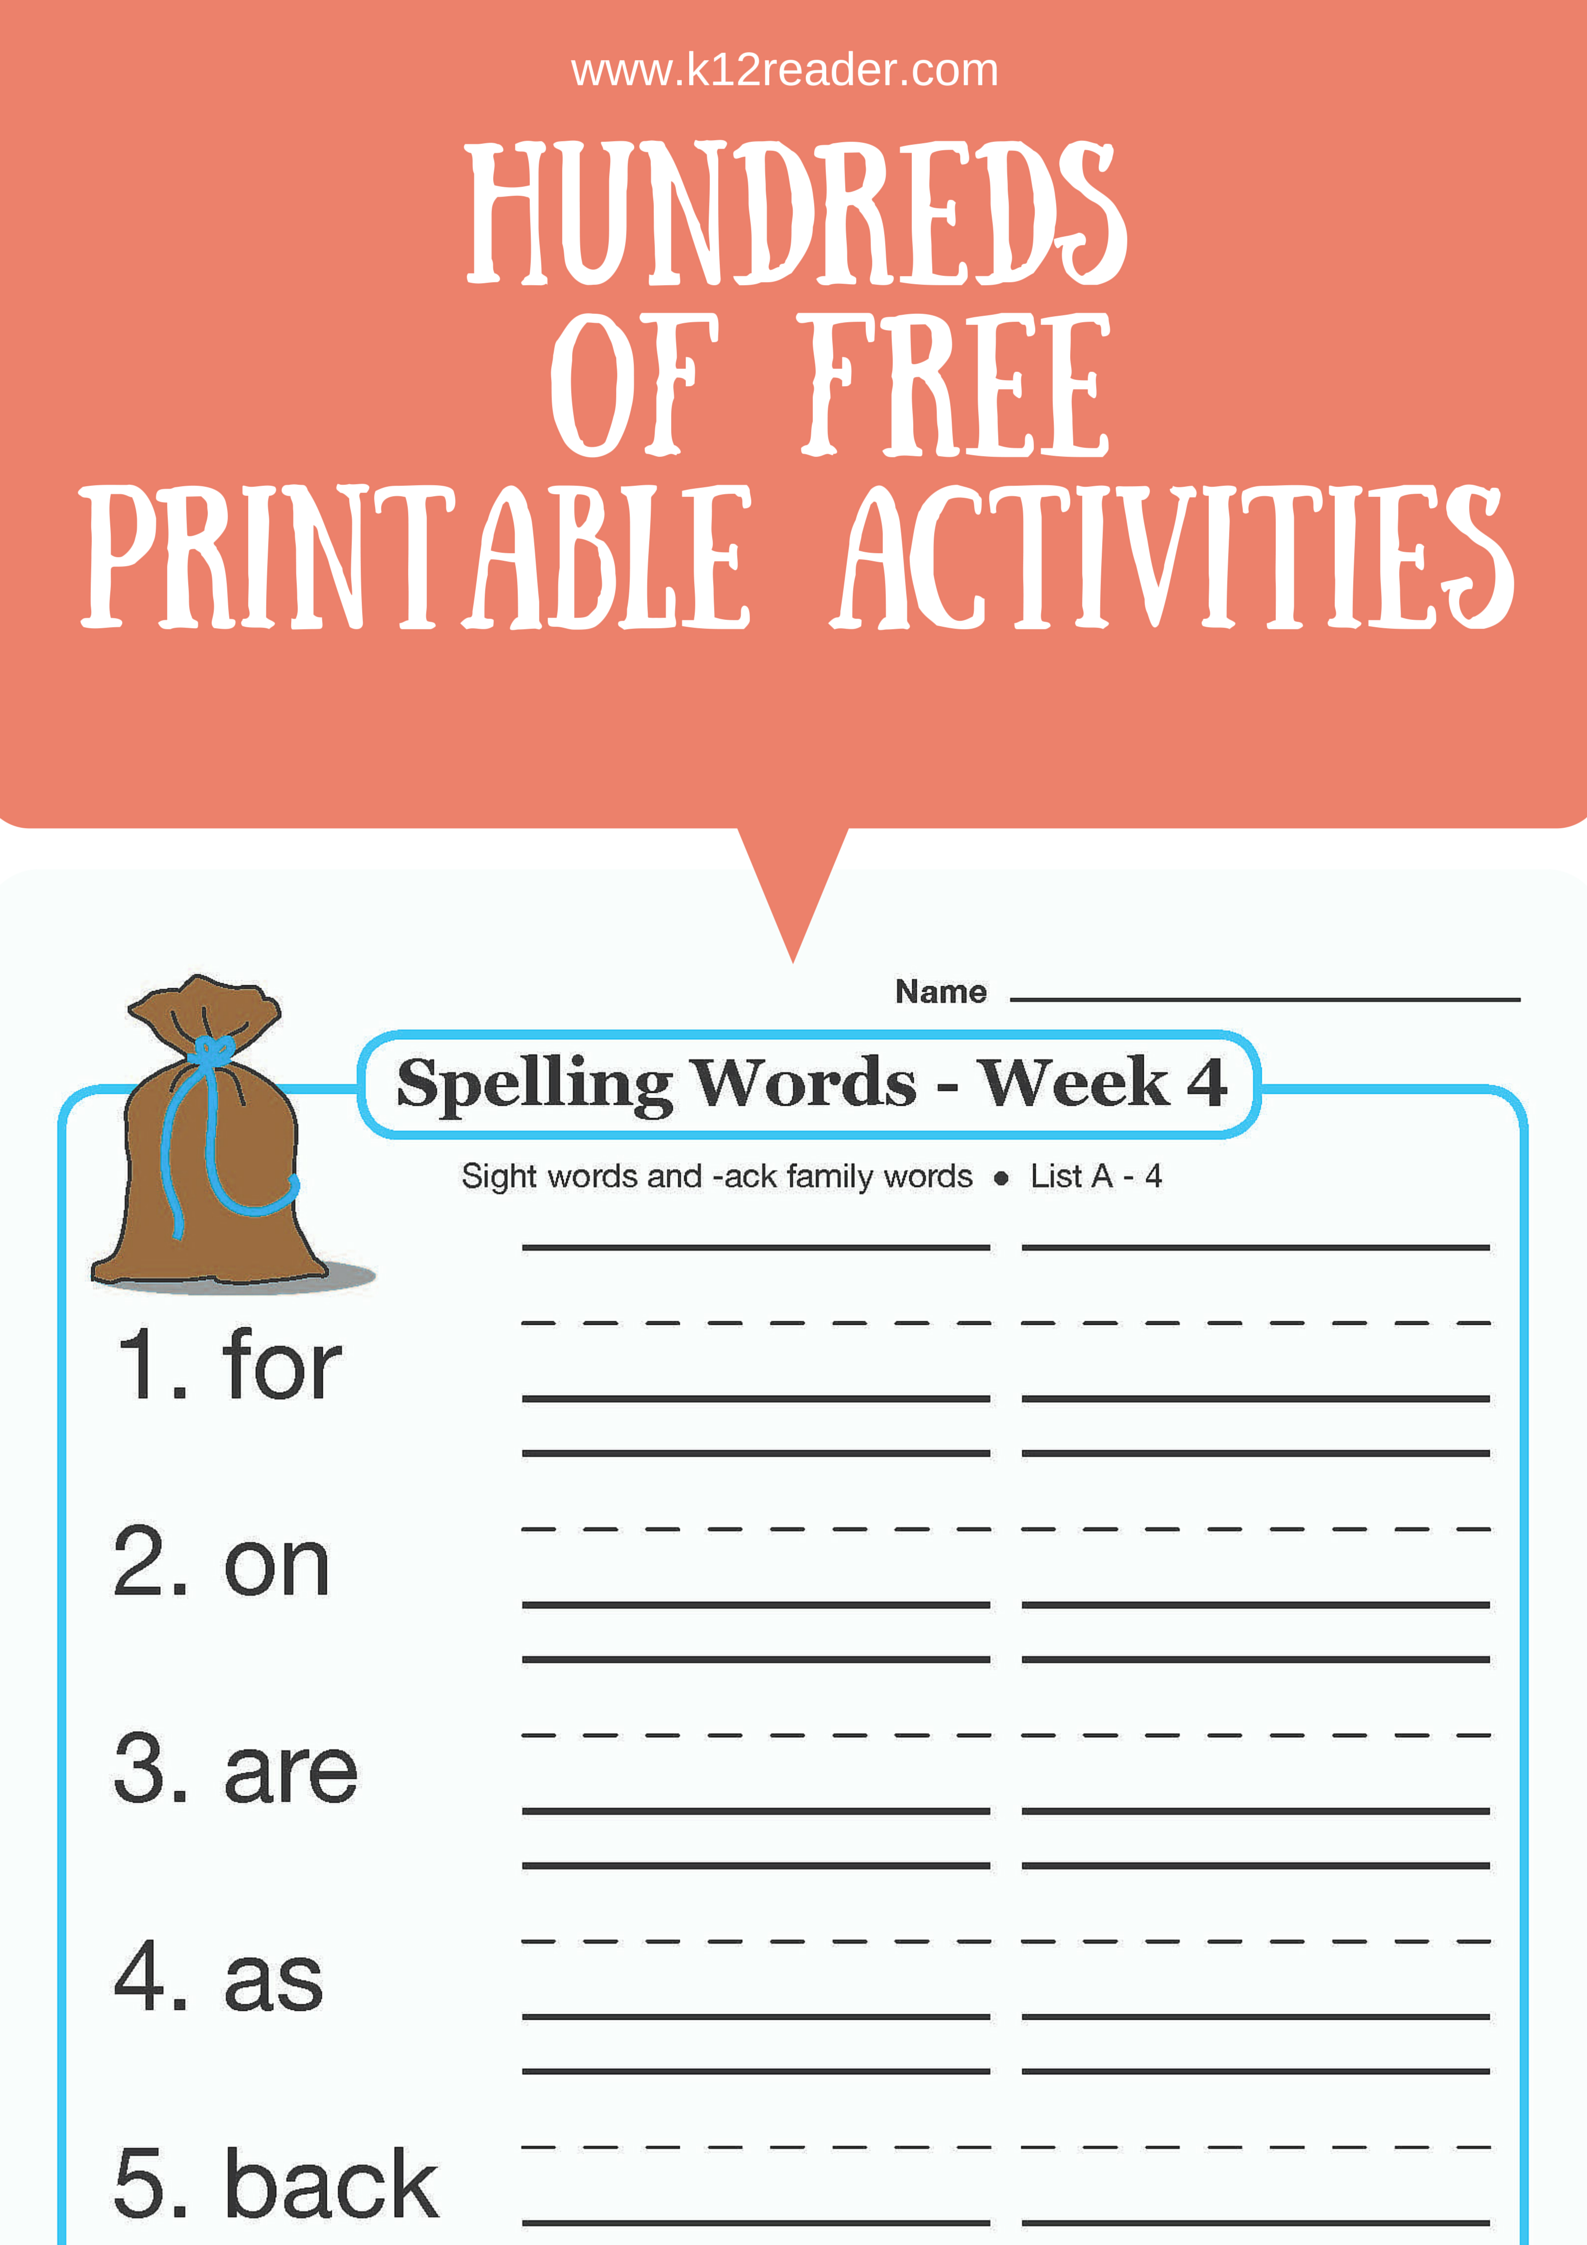 - Find HUNDREDS Of Free Printable Learning Materials On Www